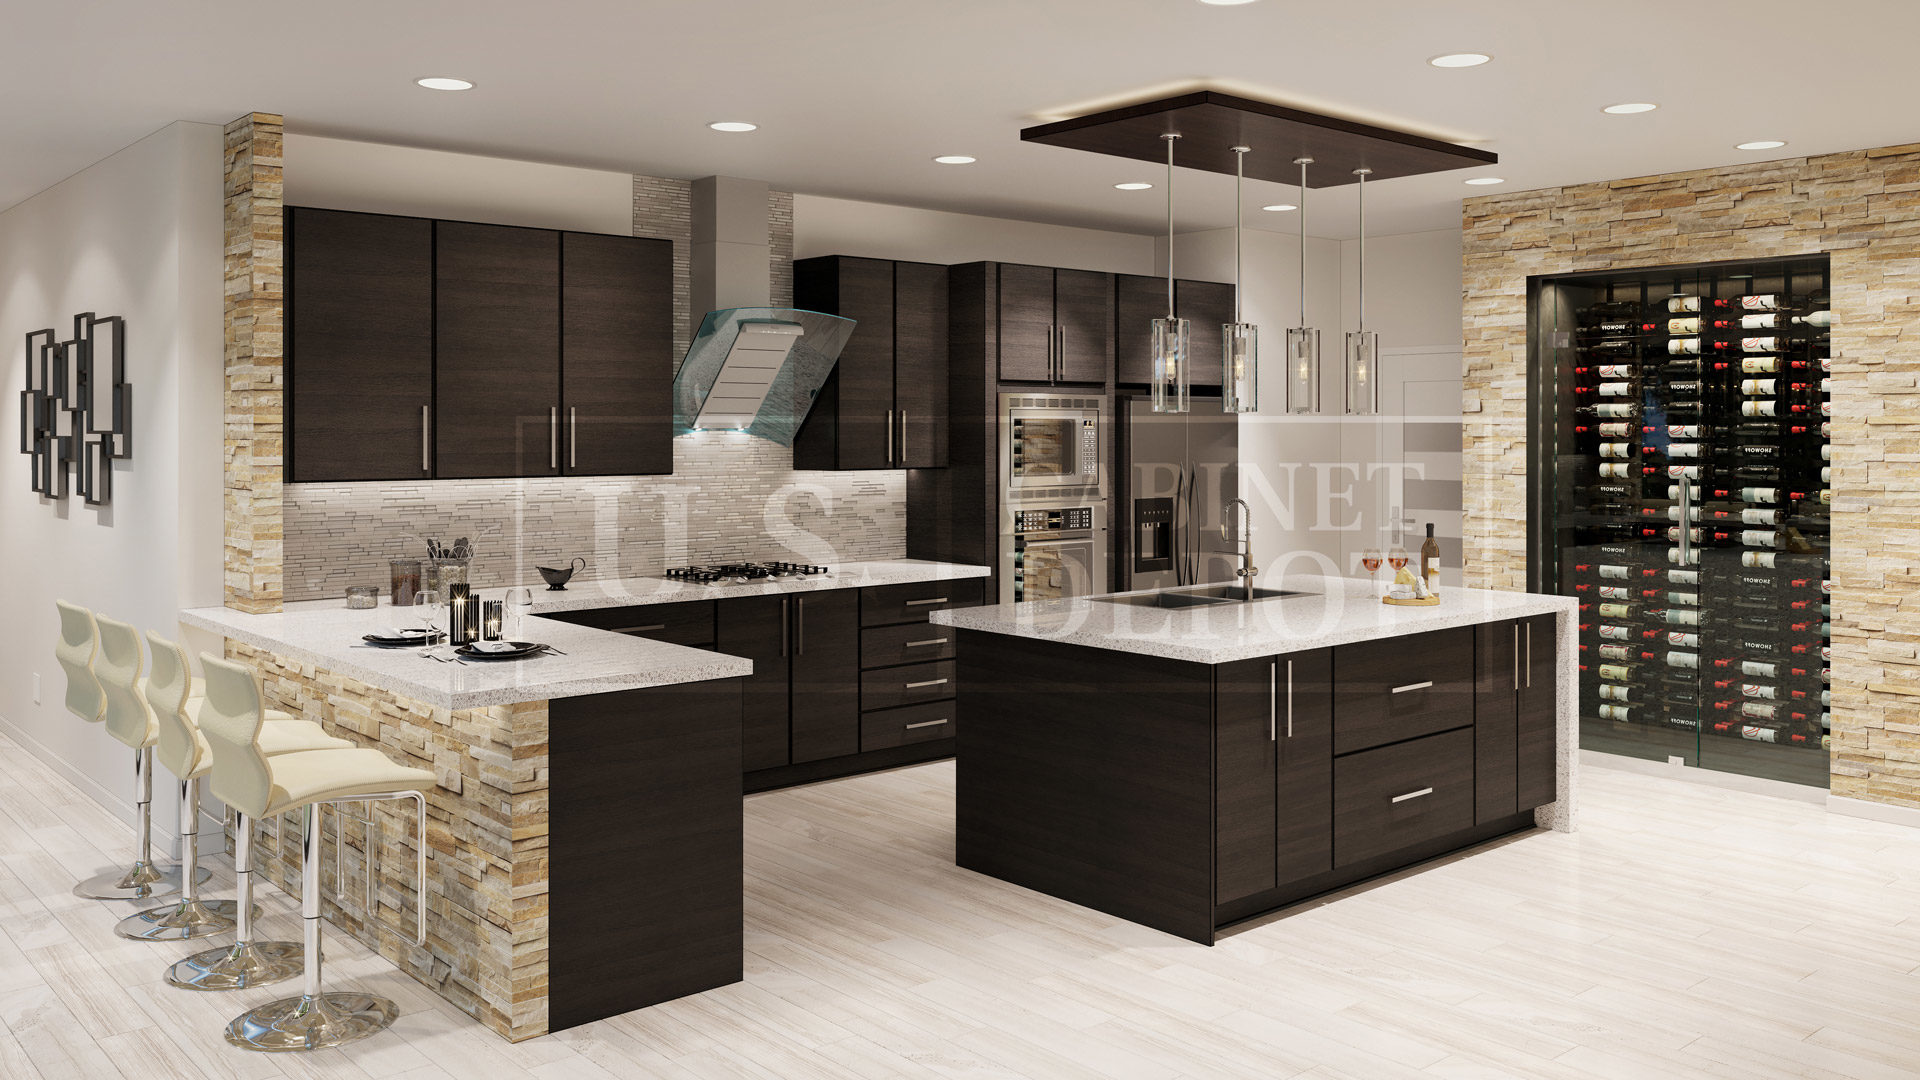 Modern Kitchen Designs Buy Online Alpine Series Frameless Cabinets Us Cabinet Depot